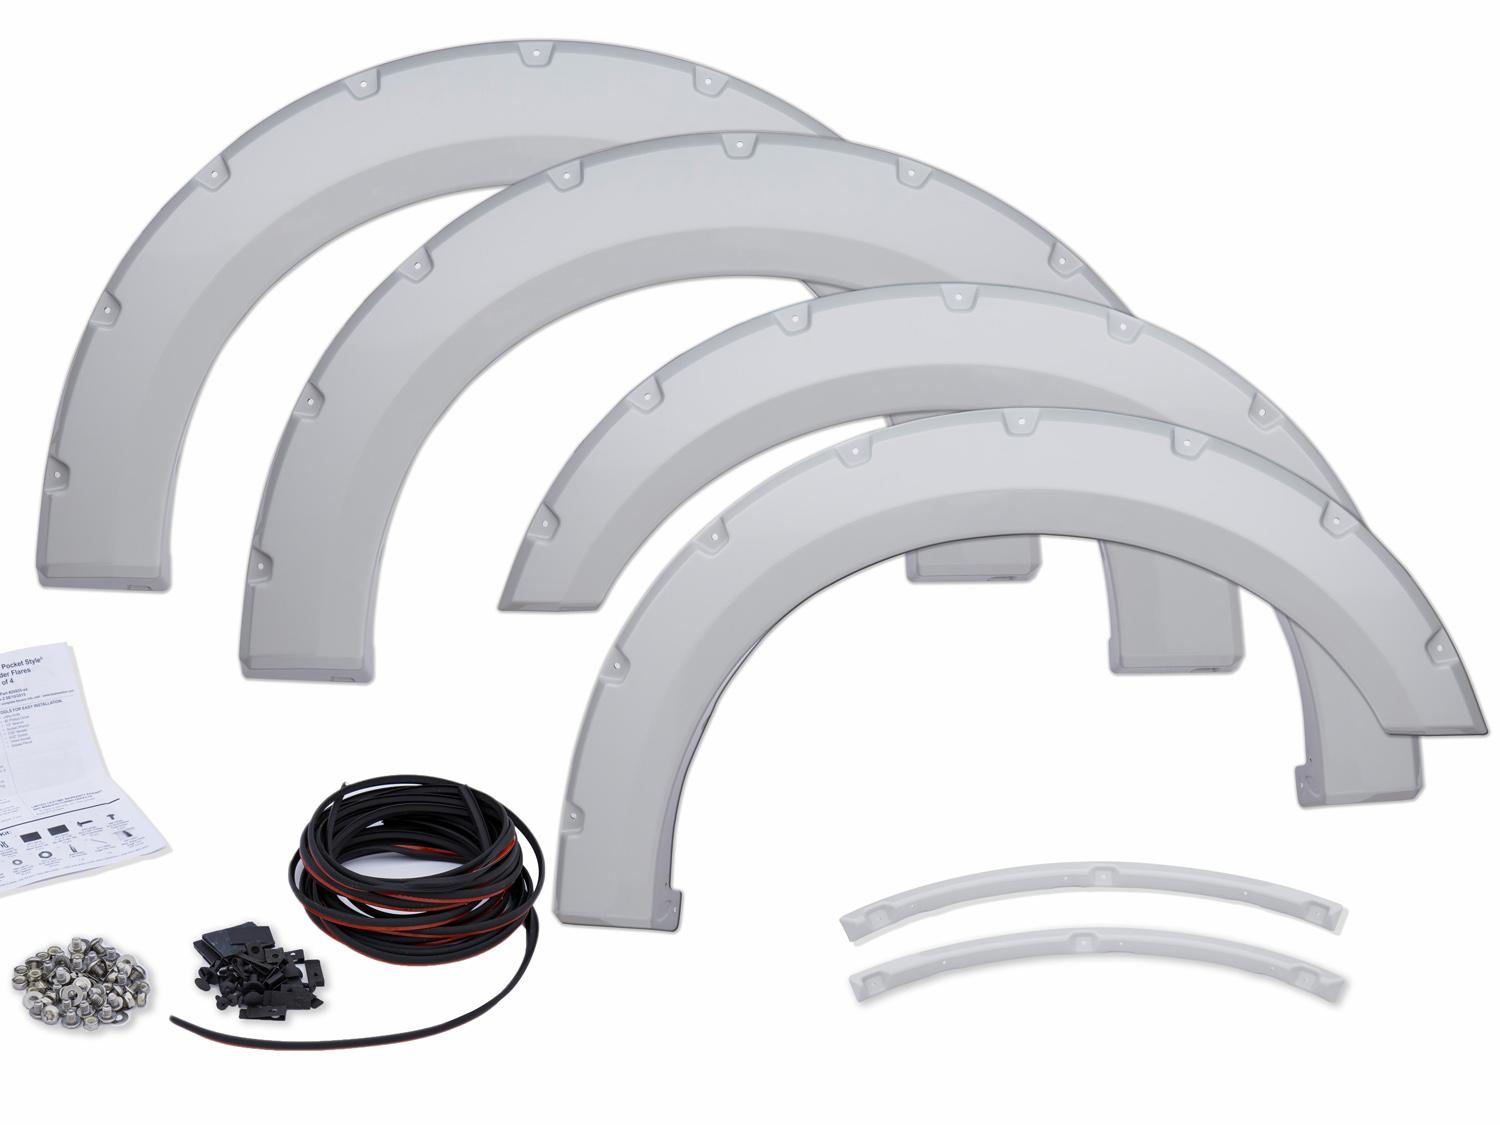 Fender Flares - Paintable, Unassembled Kit